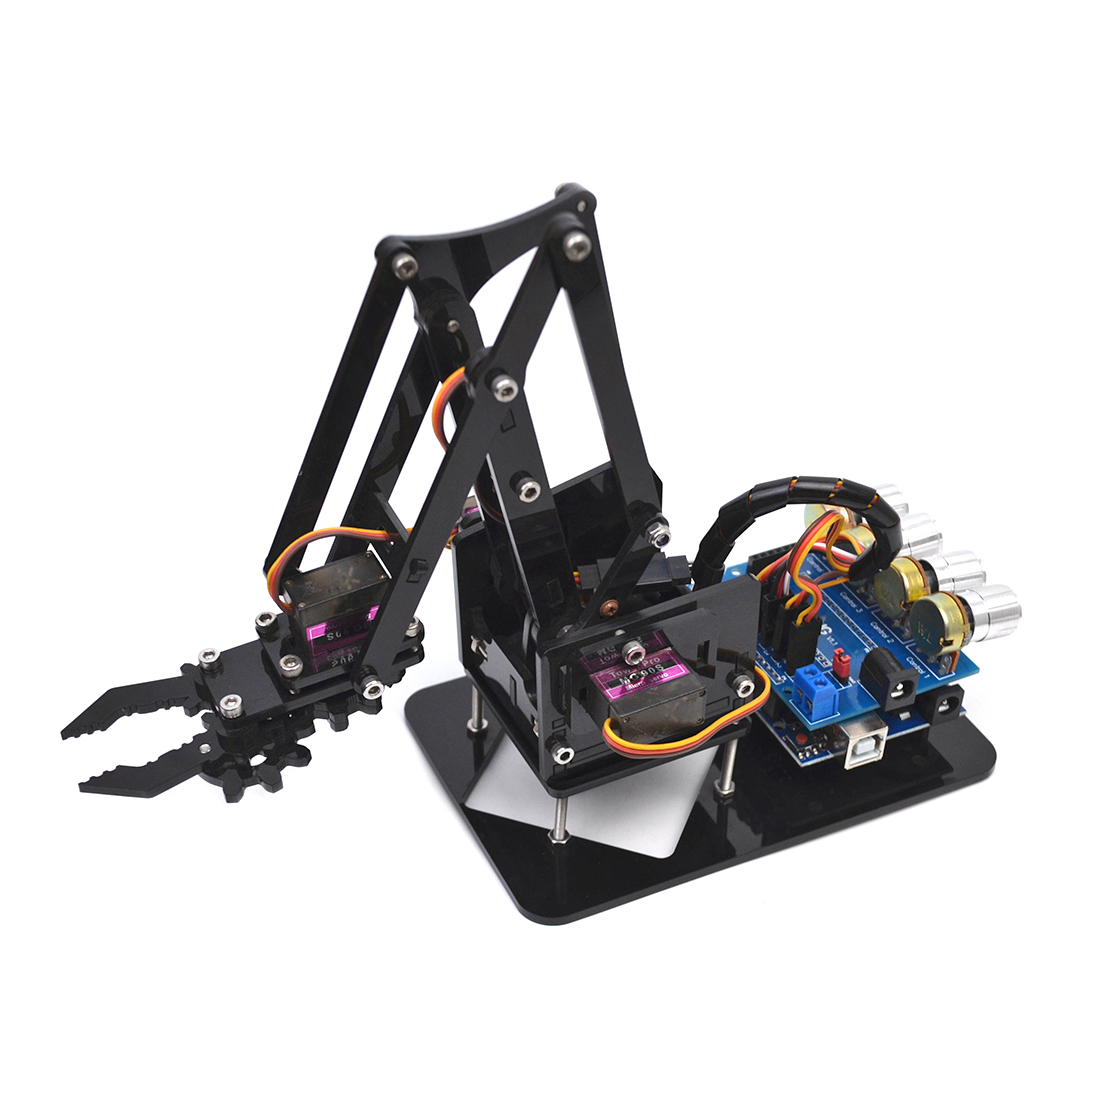 DIY Acrylic Robot Arm Robot Claw Arduino Kit 4DOF Mechanical Grab Manipulator Drop Shipping